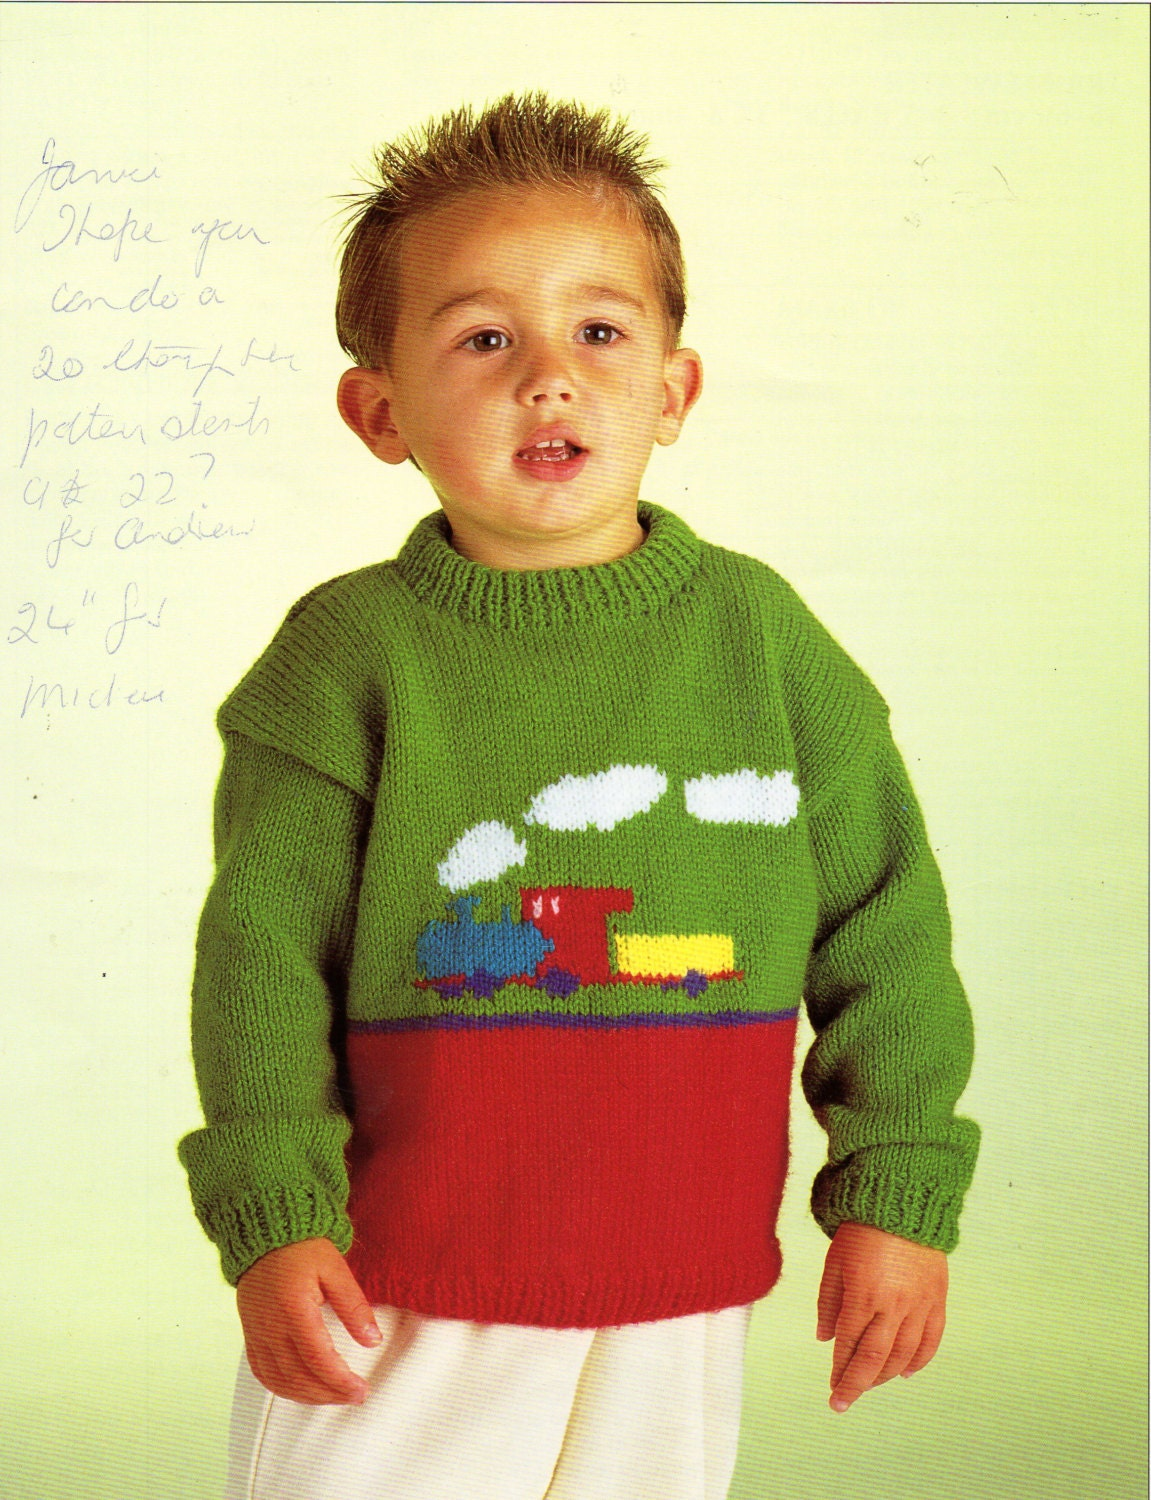 Train Knitting Pattern : baby childs childrens train sweater knitting pattern PDF train